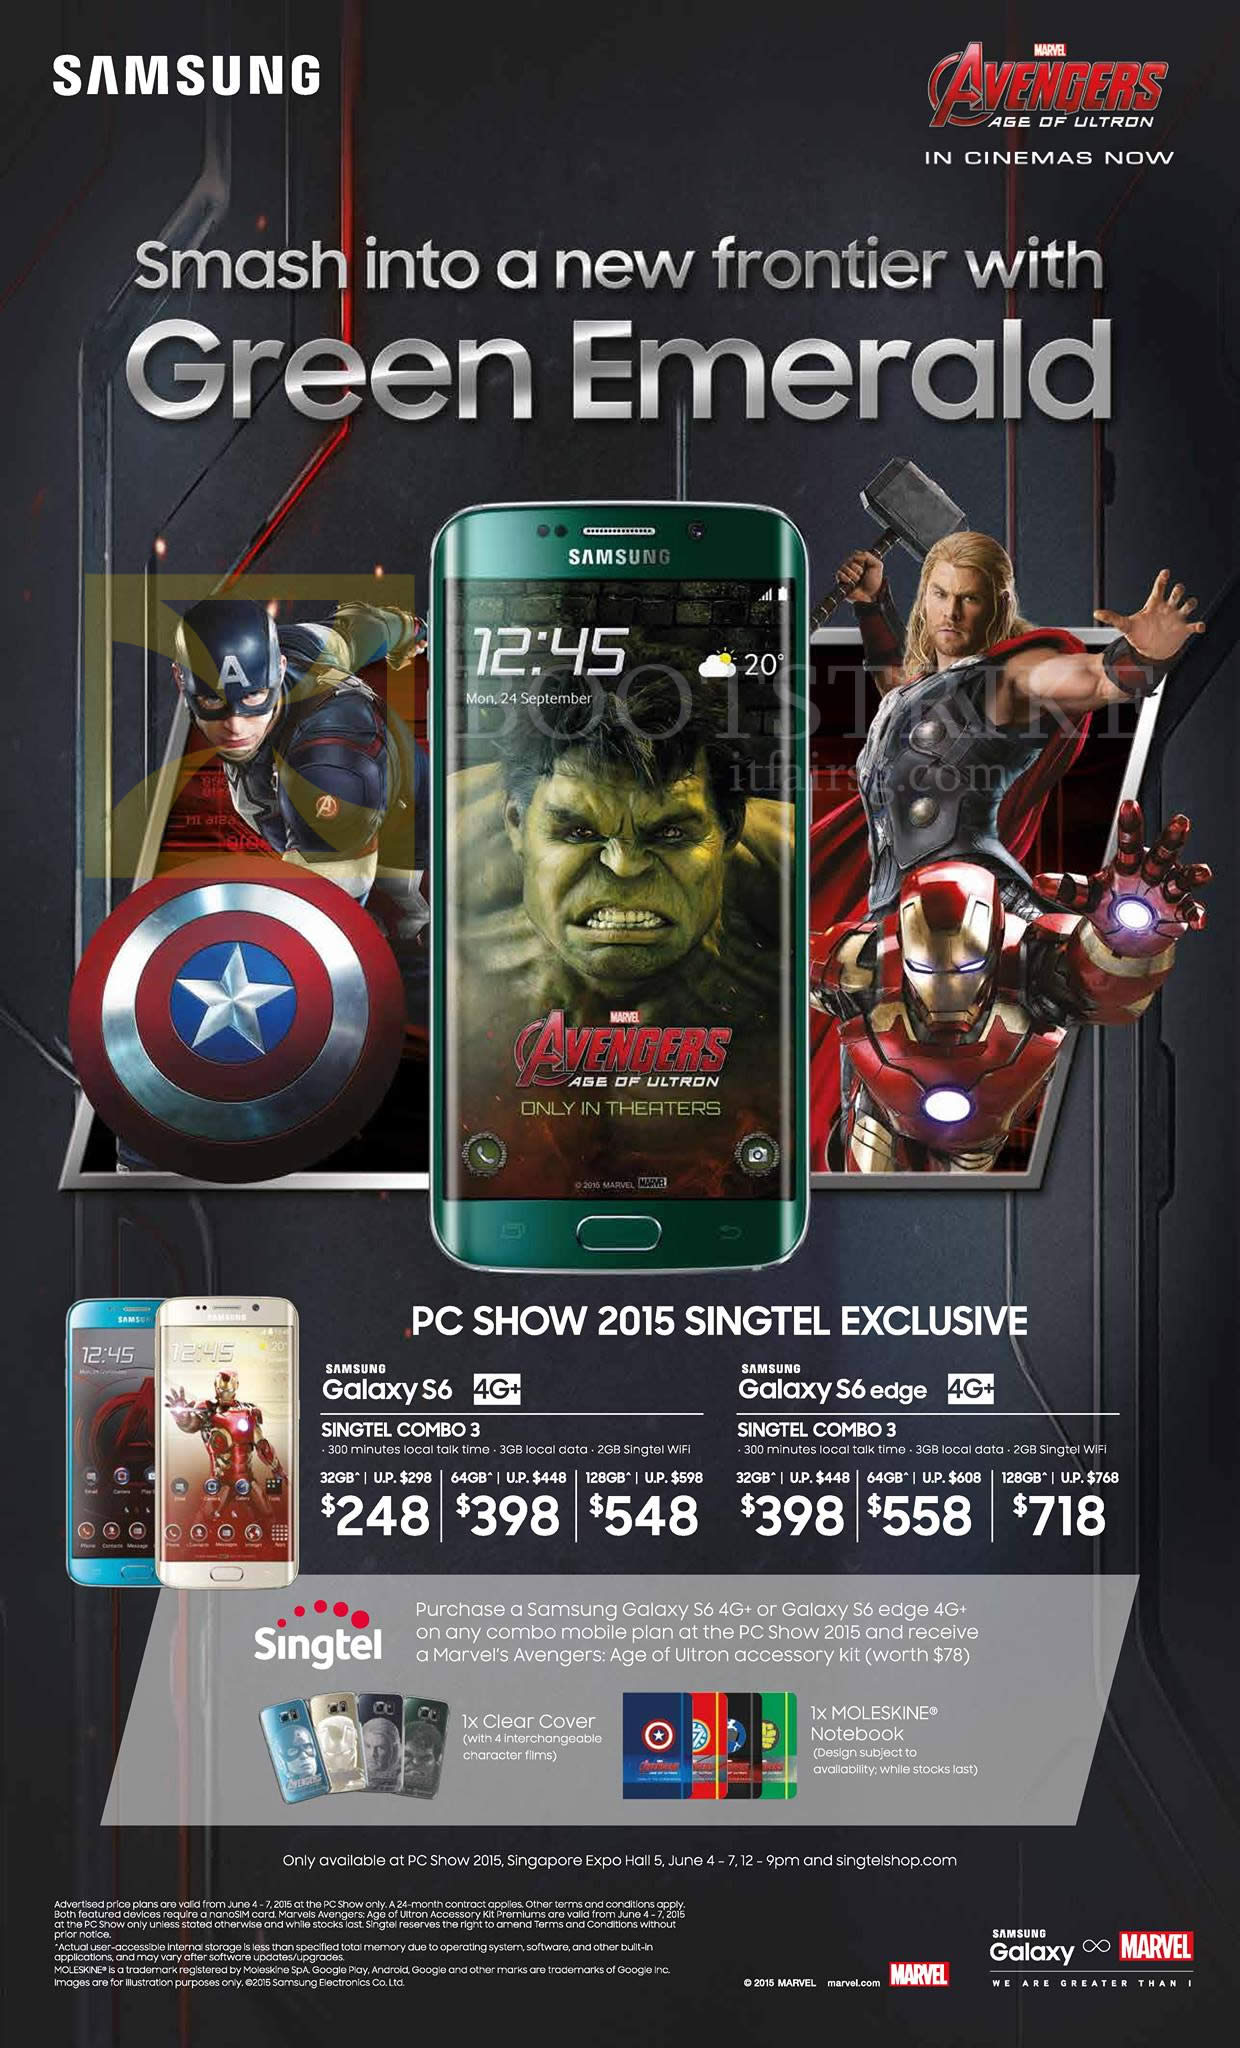 PC SHOW 2015 price list image brochure of Singtel Mobile Samsung Galaxy S6 Green Emerald